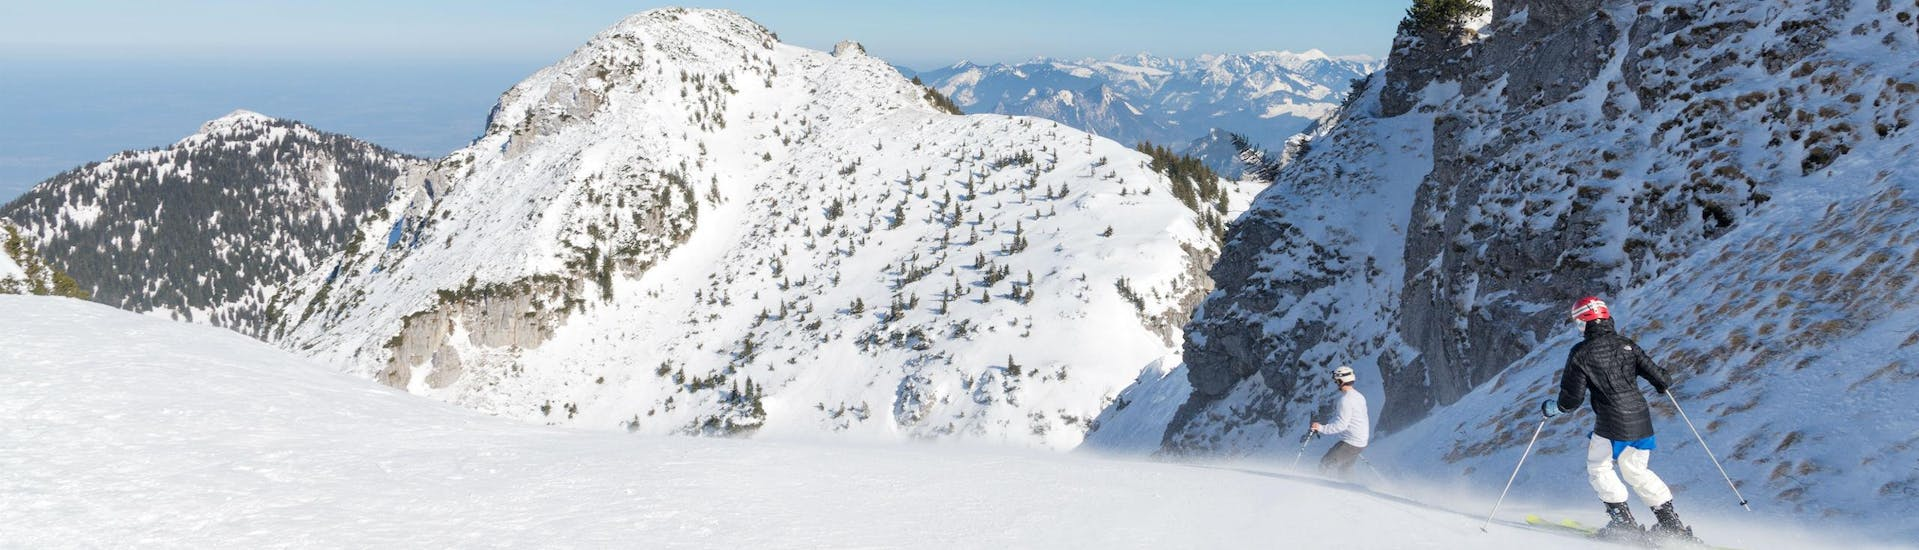 An image of two skiers on the ski slope in Bayrischzell - Sudelfeld, a popular German ski resort where those who want to learn to ski can book ski lessons with one of the local ski skools.